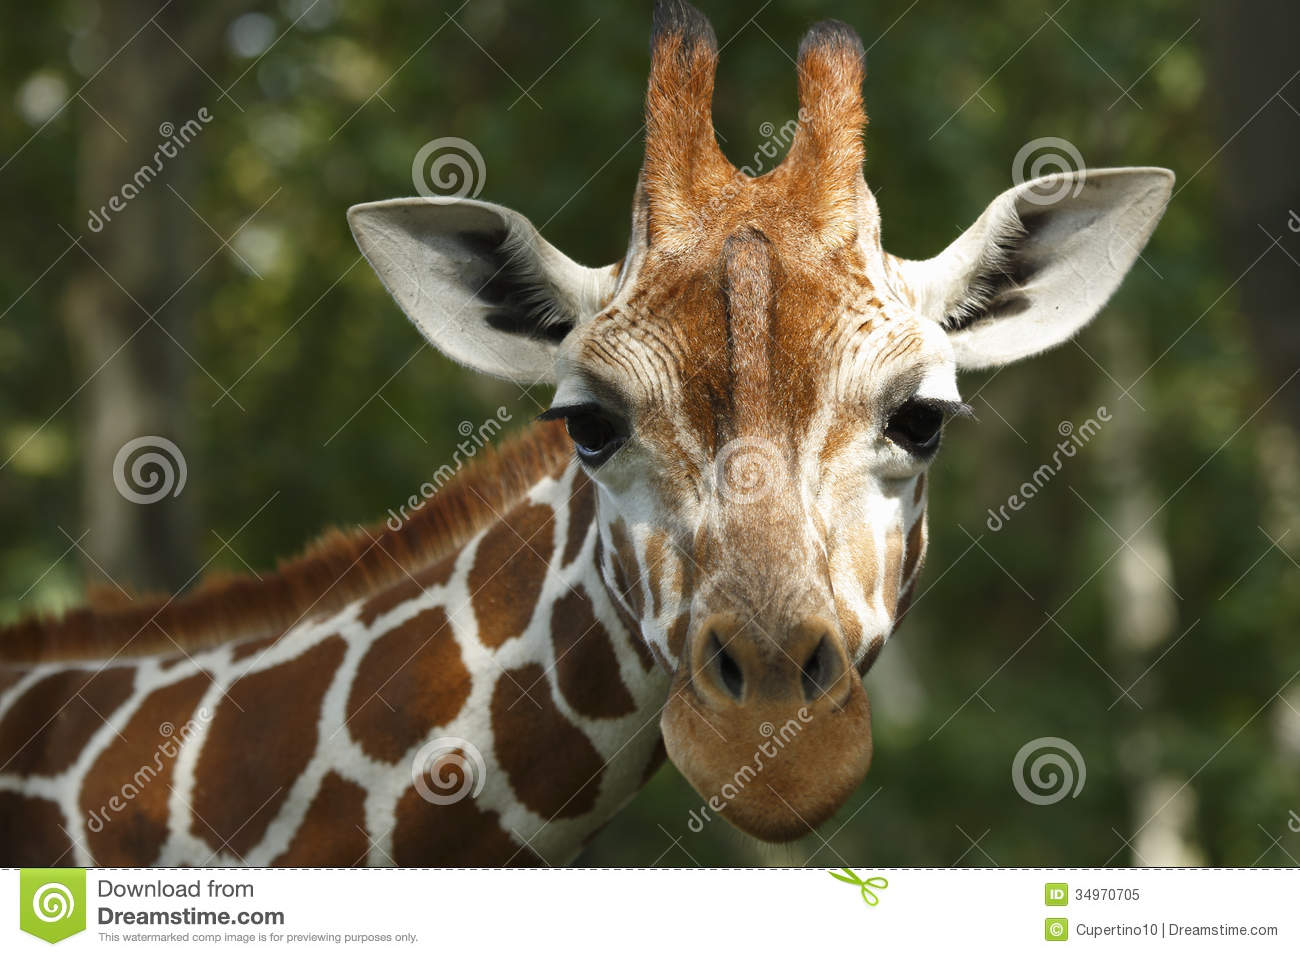 Giraffe Royalty Free Stock Photo - Image: 34970705